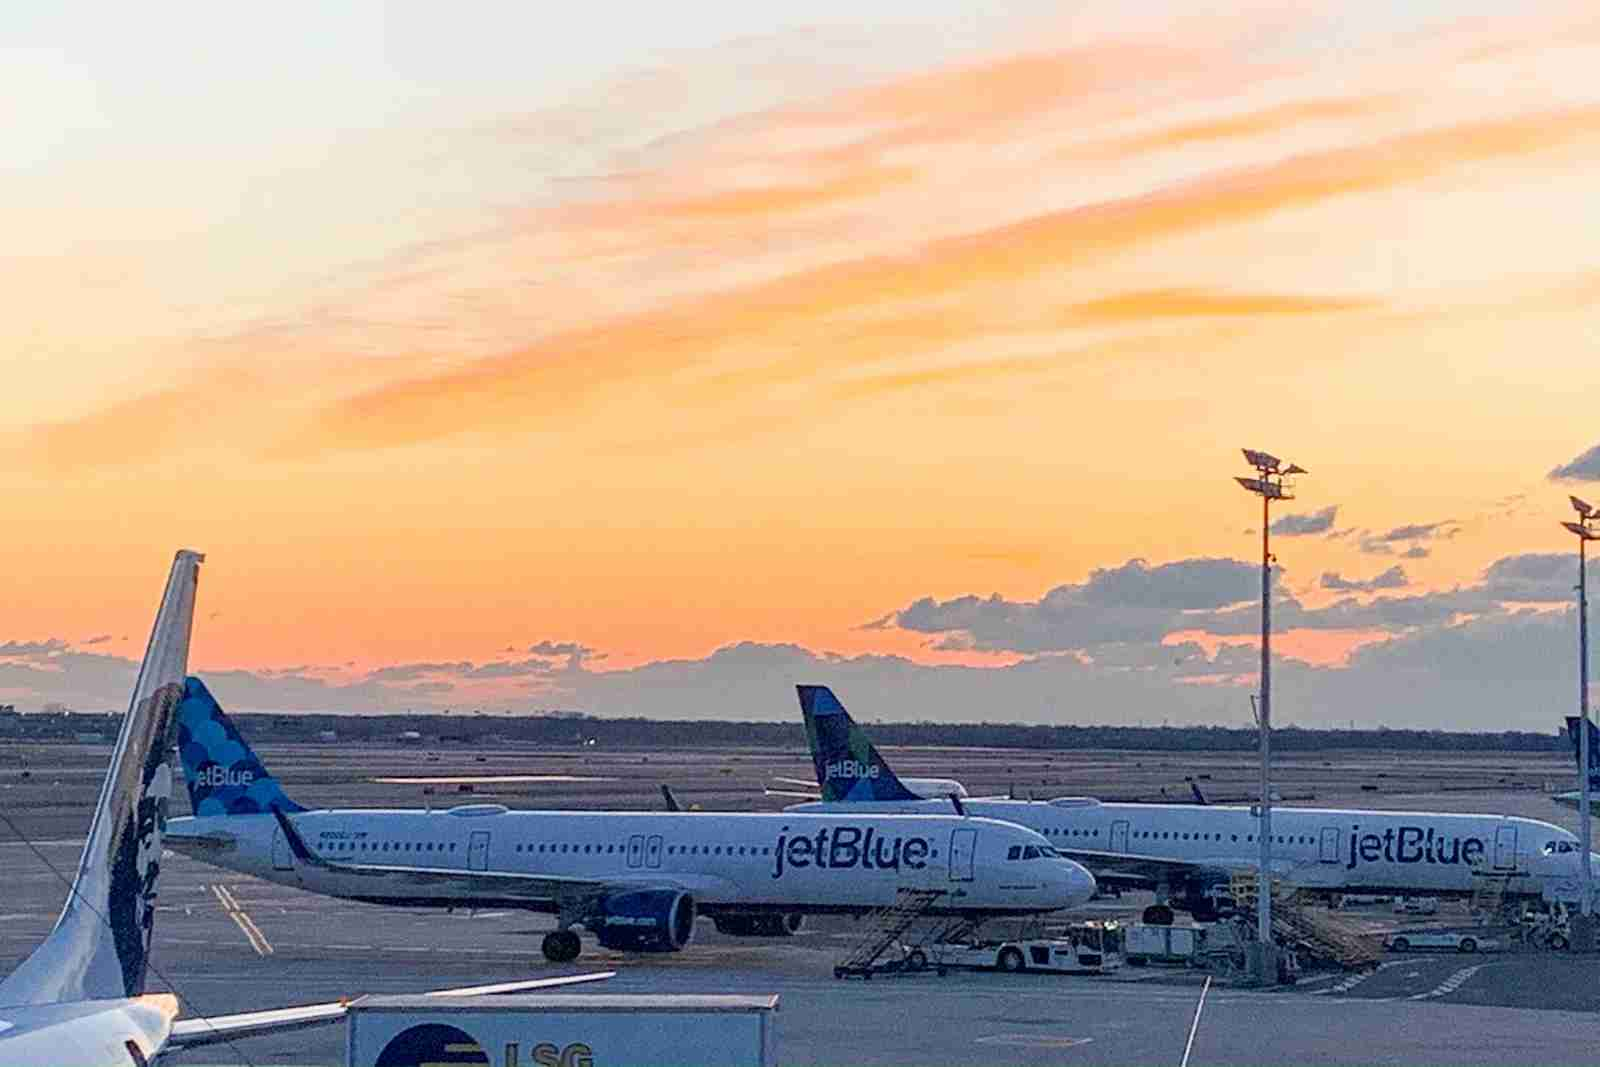 JetBlue planes at JFK in 2020. (Photo by Clint Henderson/The Points Guy)